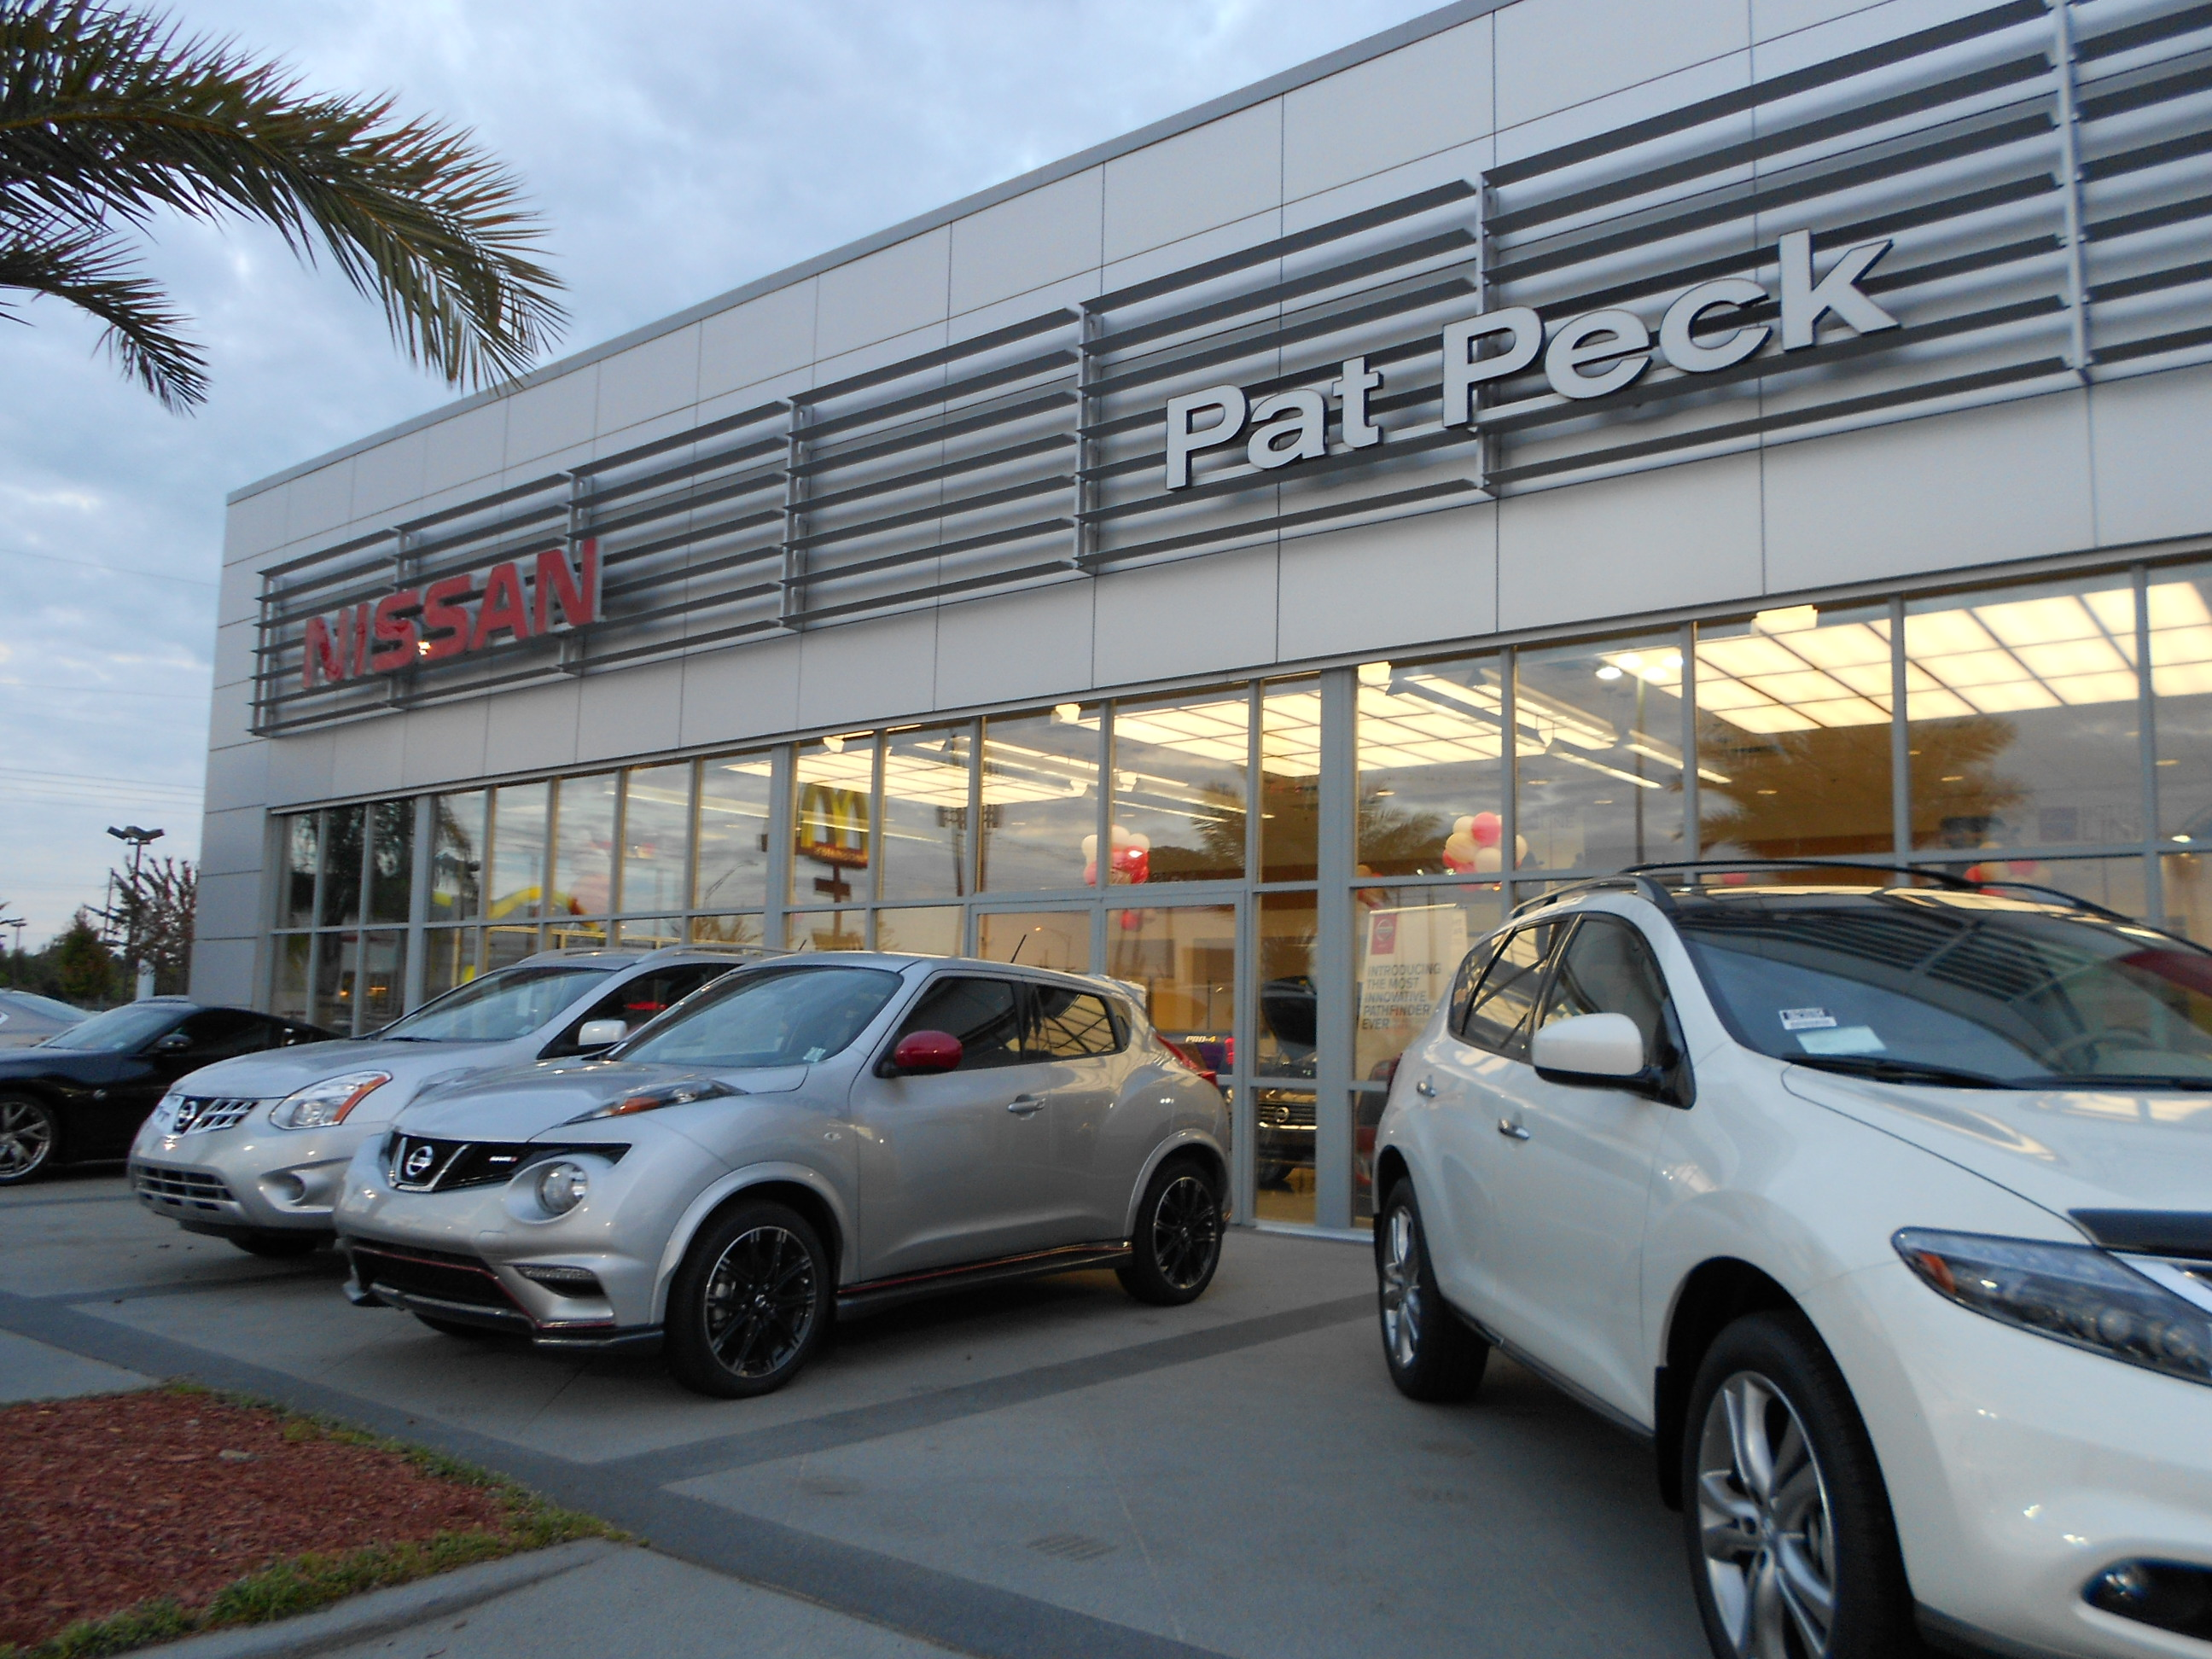 Butch Oustalet Ford >> Pat Peck Nissan - Gulfport at 9480 US Highway 49, Gulfport, MS on Fave